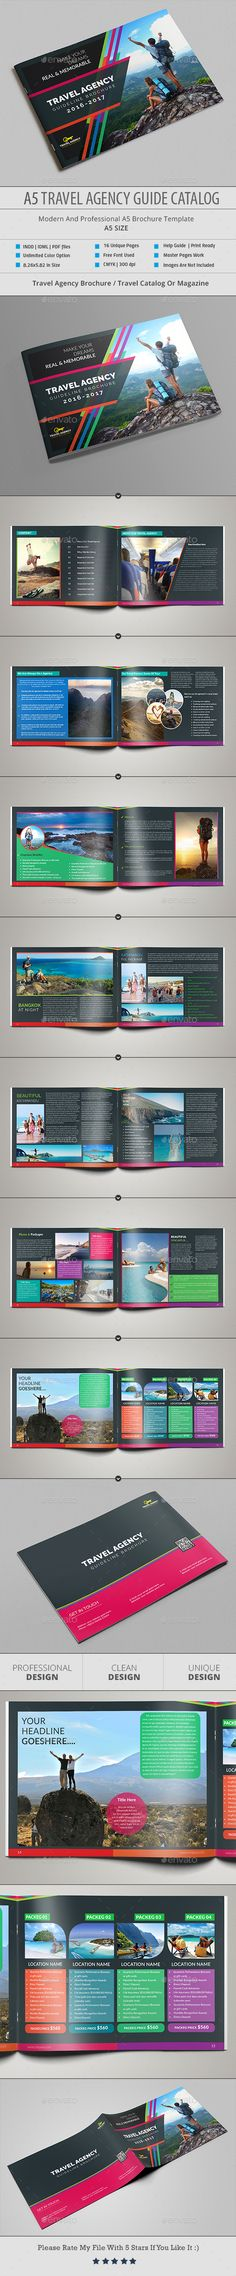 A5 Travel Agency Guide Catalog Template InDesign INDD